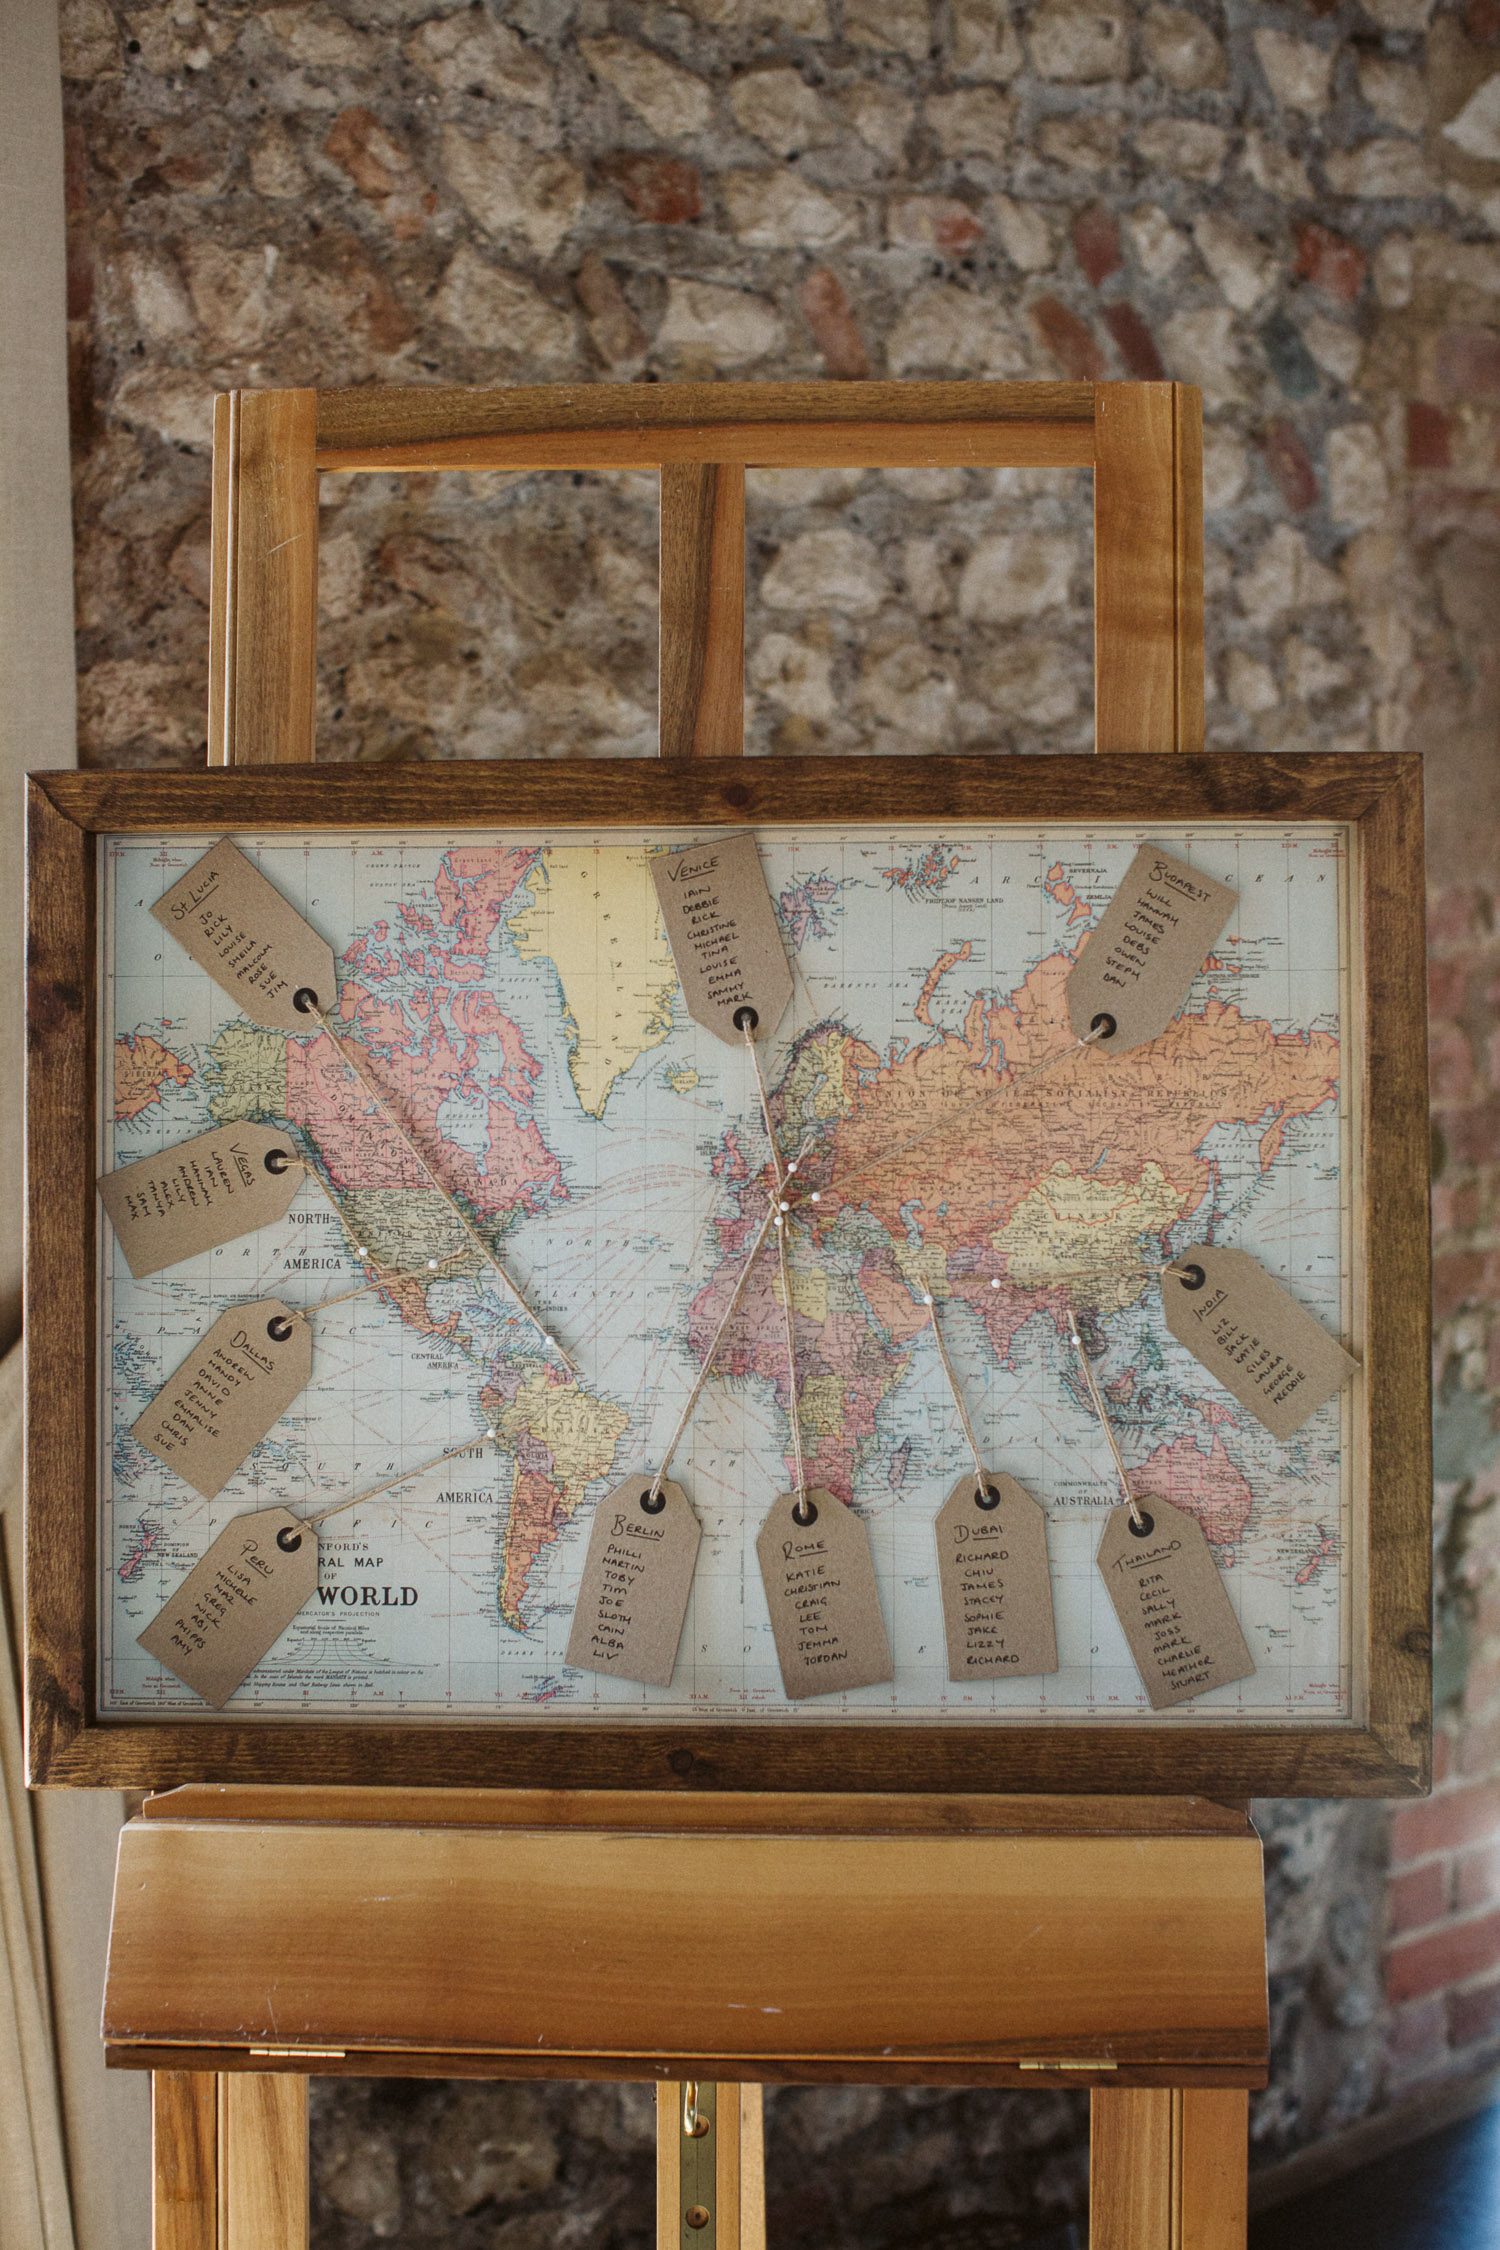 table arrangement decorated with world map and luggage tags